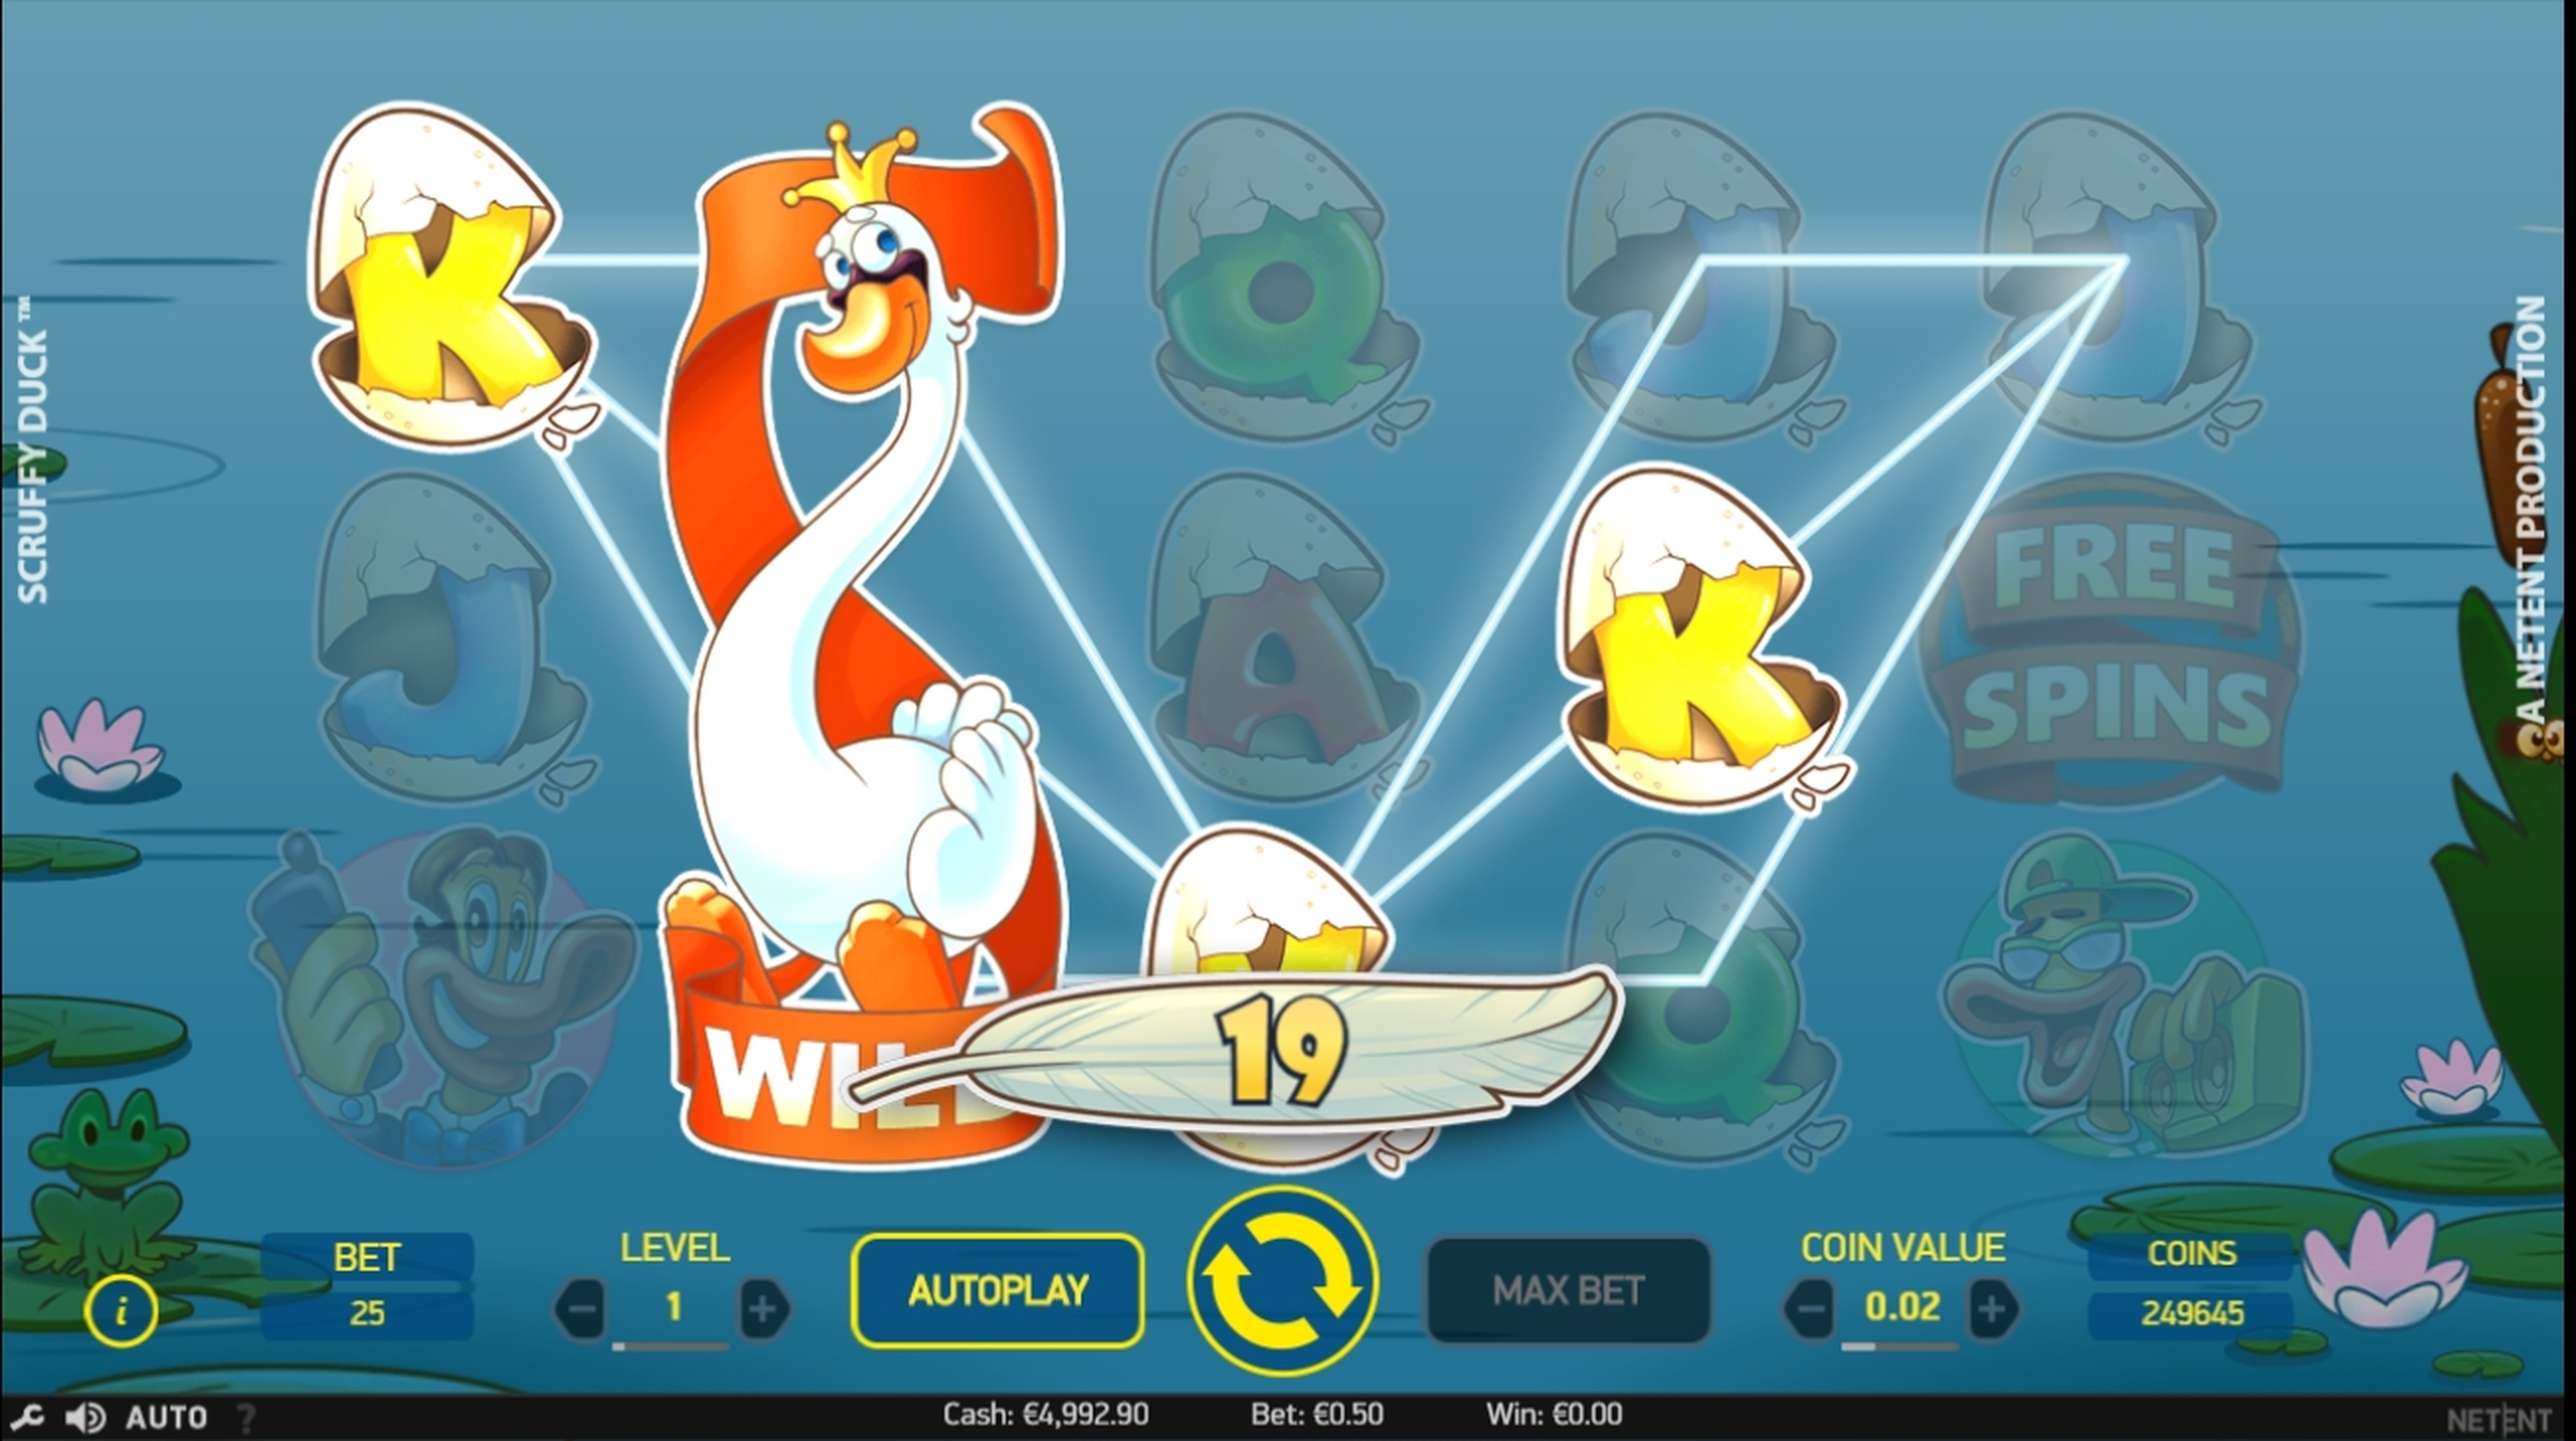 Win Money in Scruffy Duck Free Slot Game by NetEnt